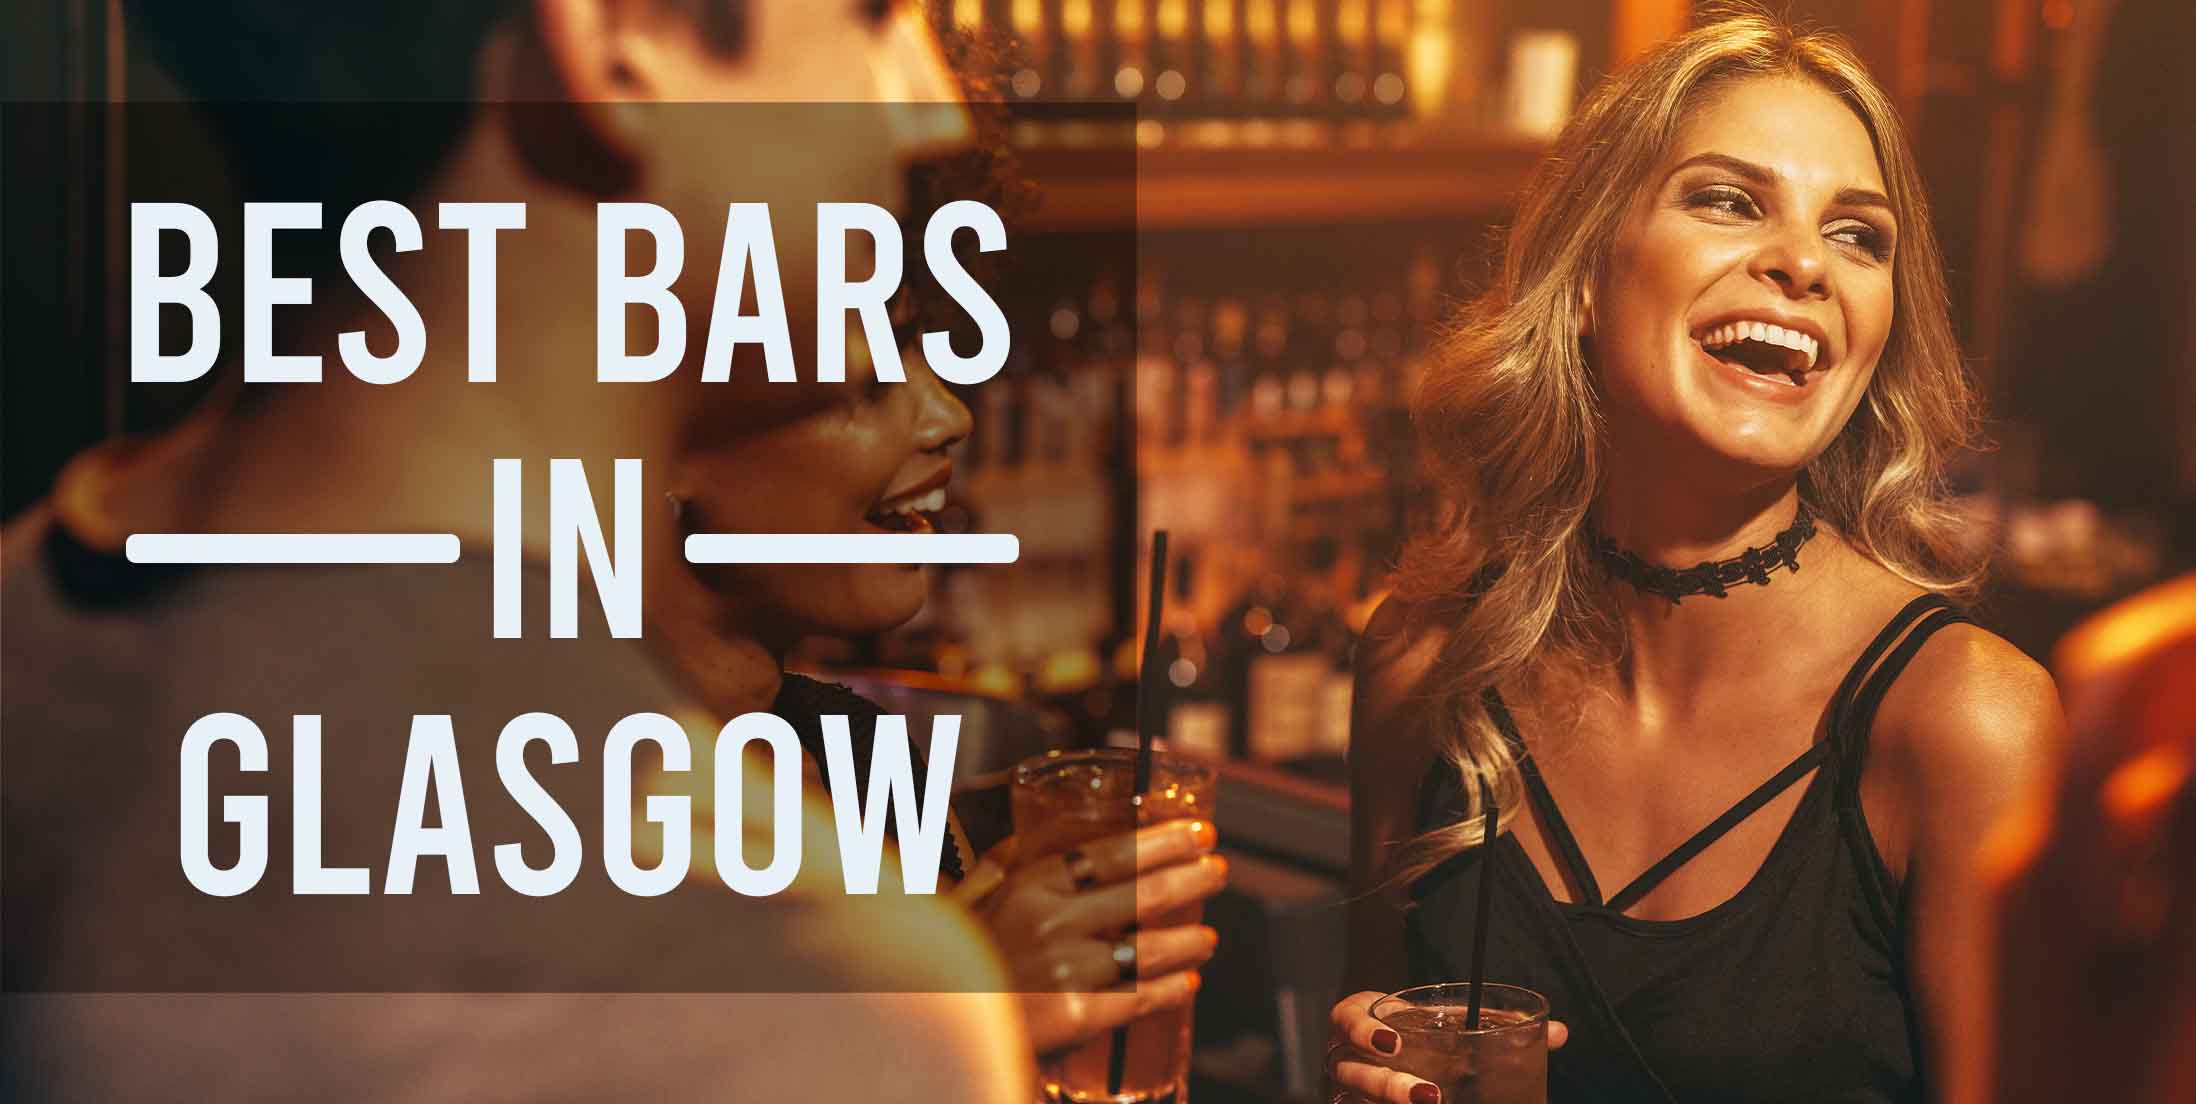 Best Bars in Glasgow